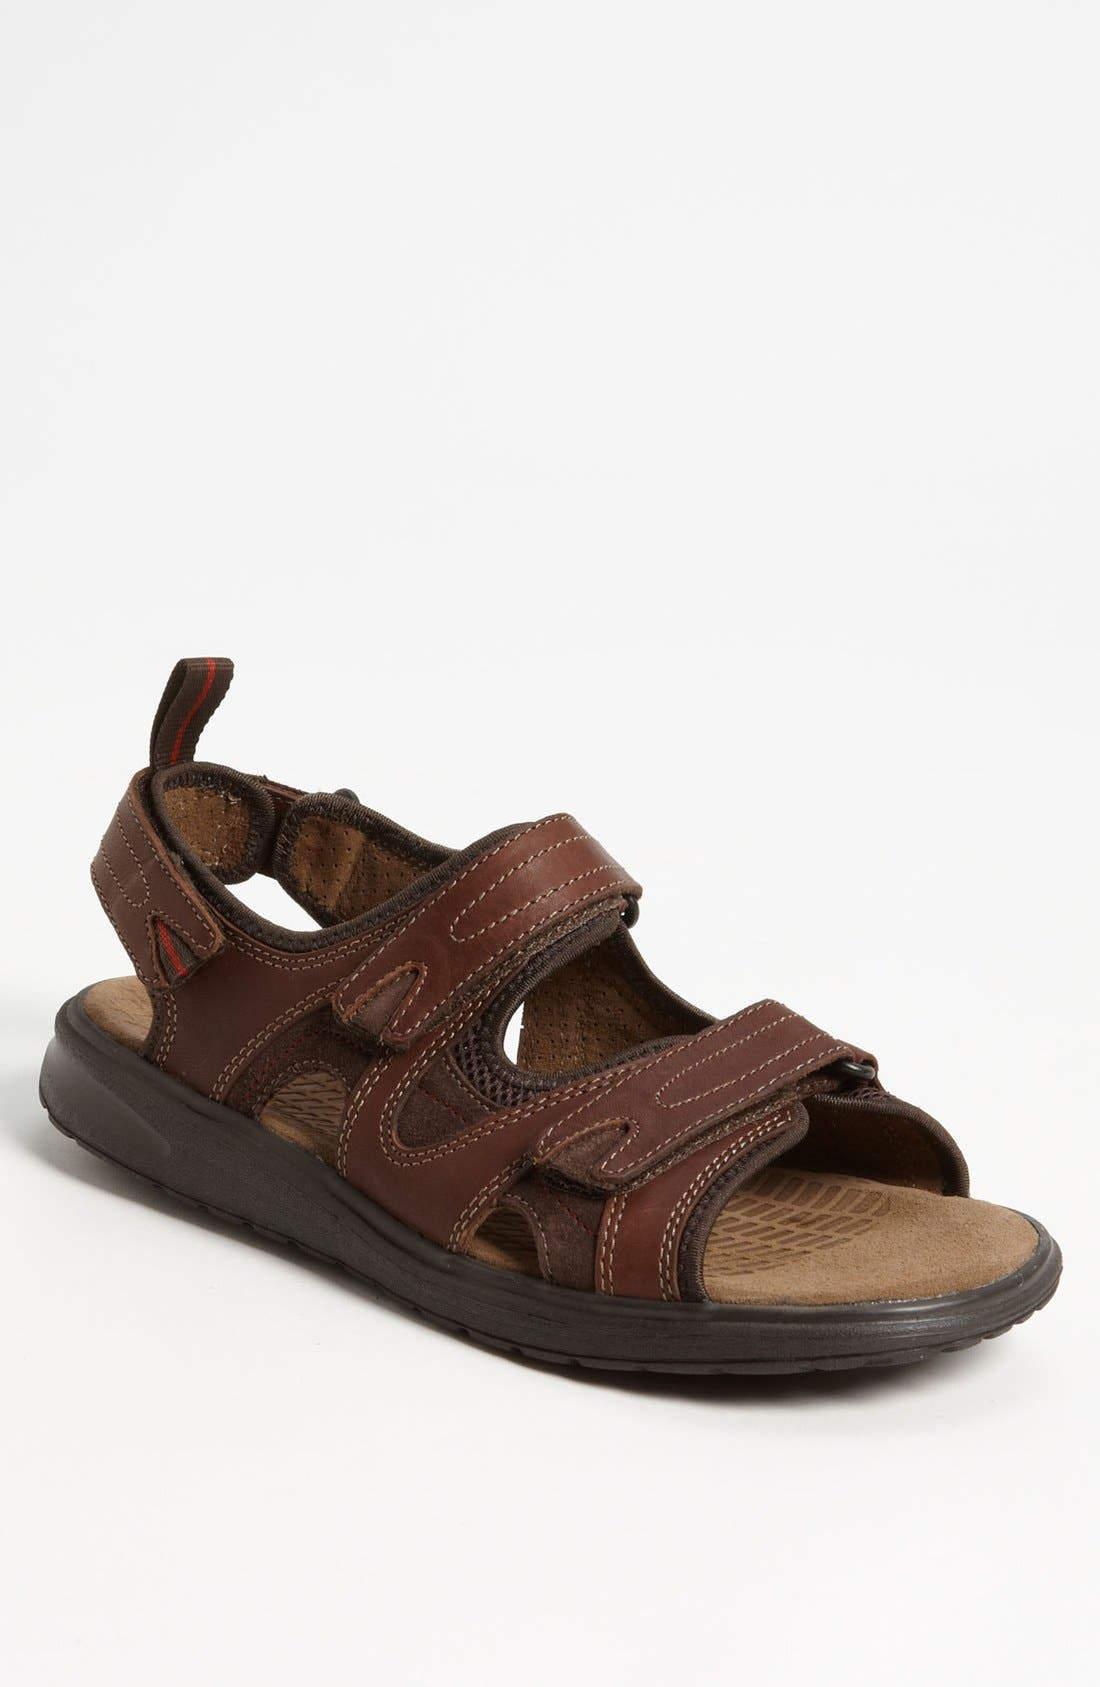 Main Image - Clarks® 'Unstructured - Caicos' Sandal   (Men)